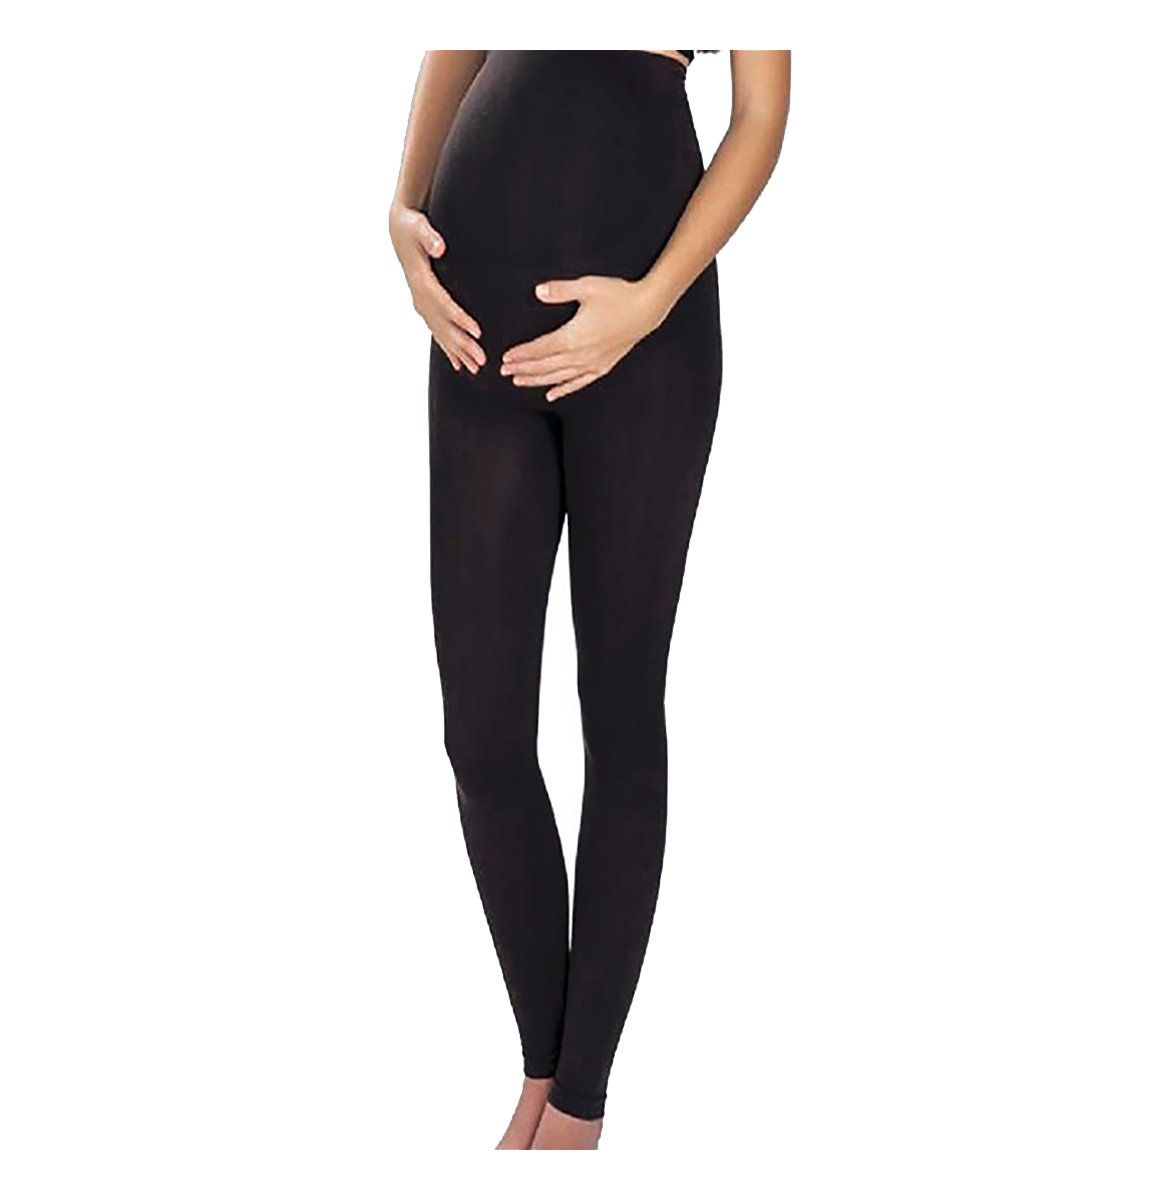 7506b78f7bc19 11 Top-Rated Black Leggings That Are So Comfortable, You'll Never Want